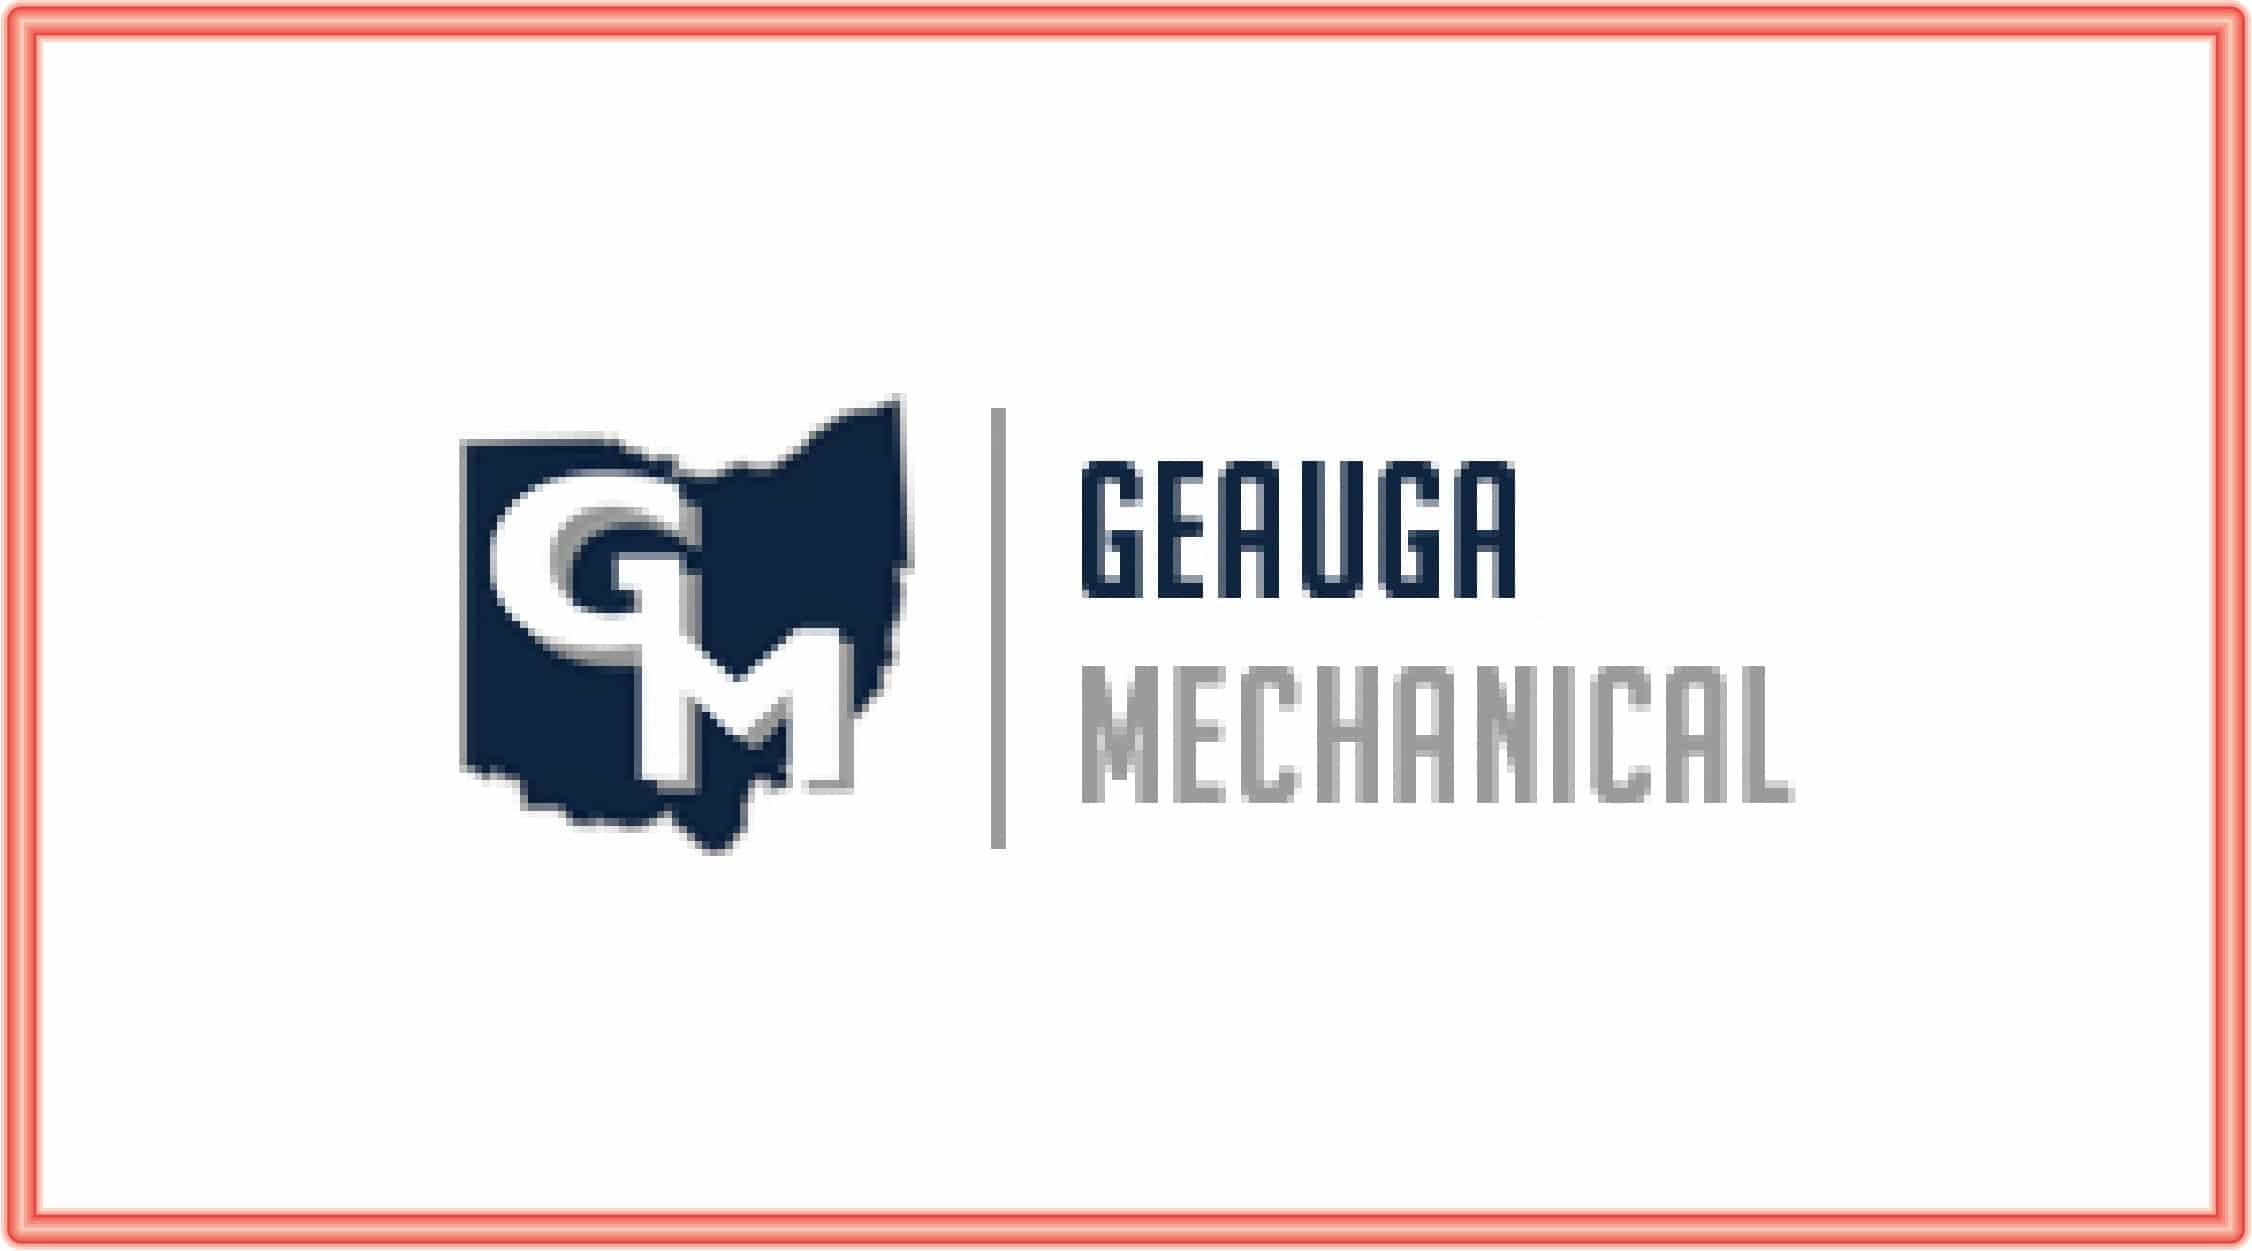 Geauga Mechanical